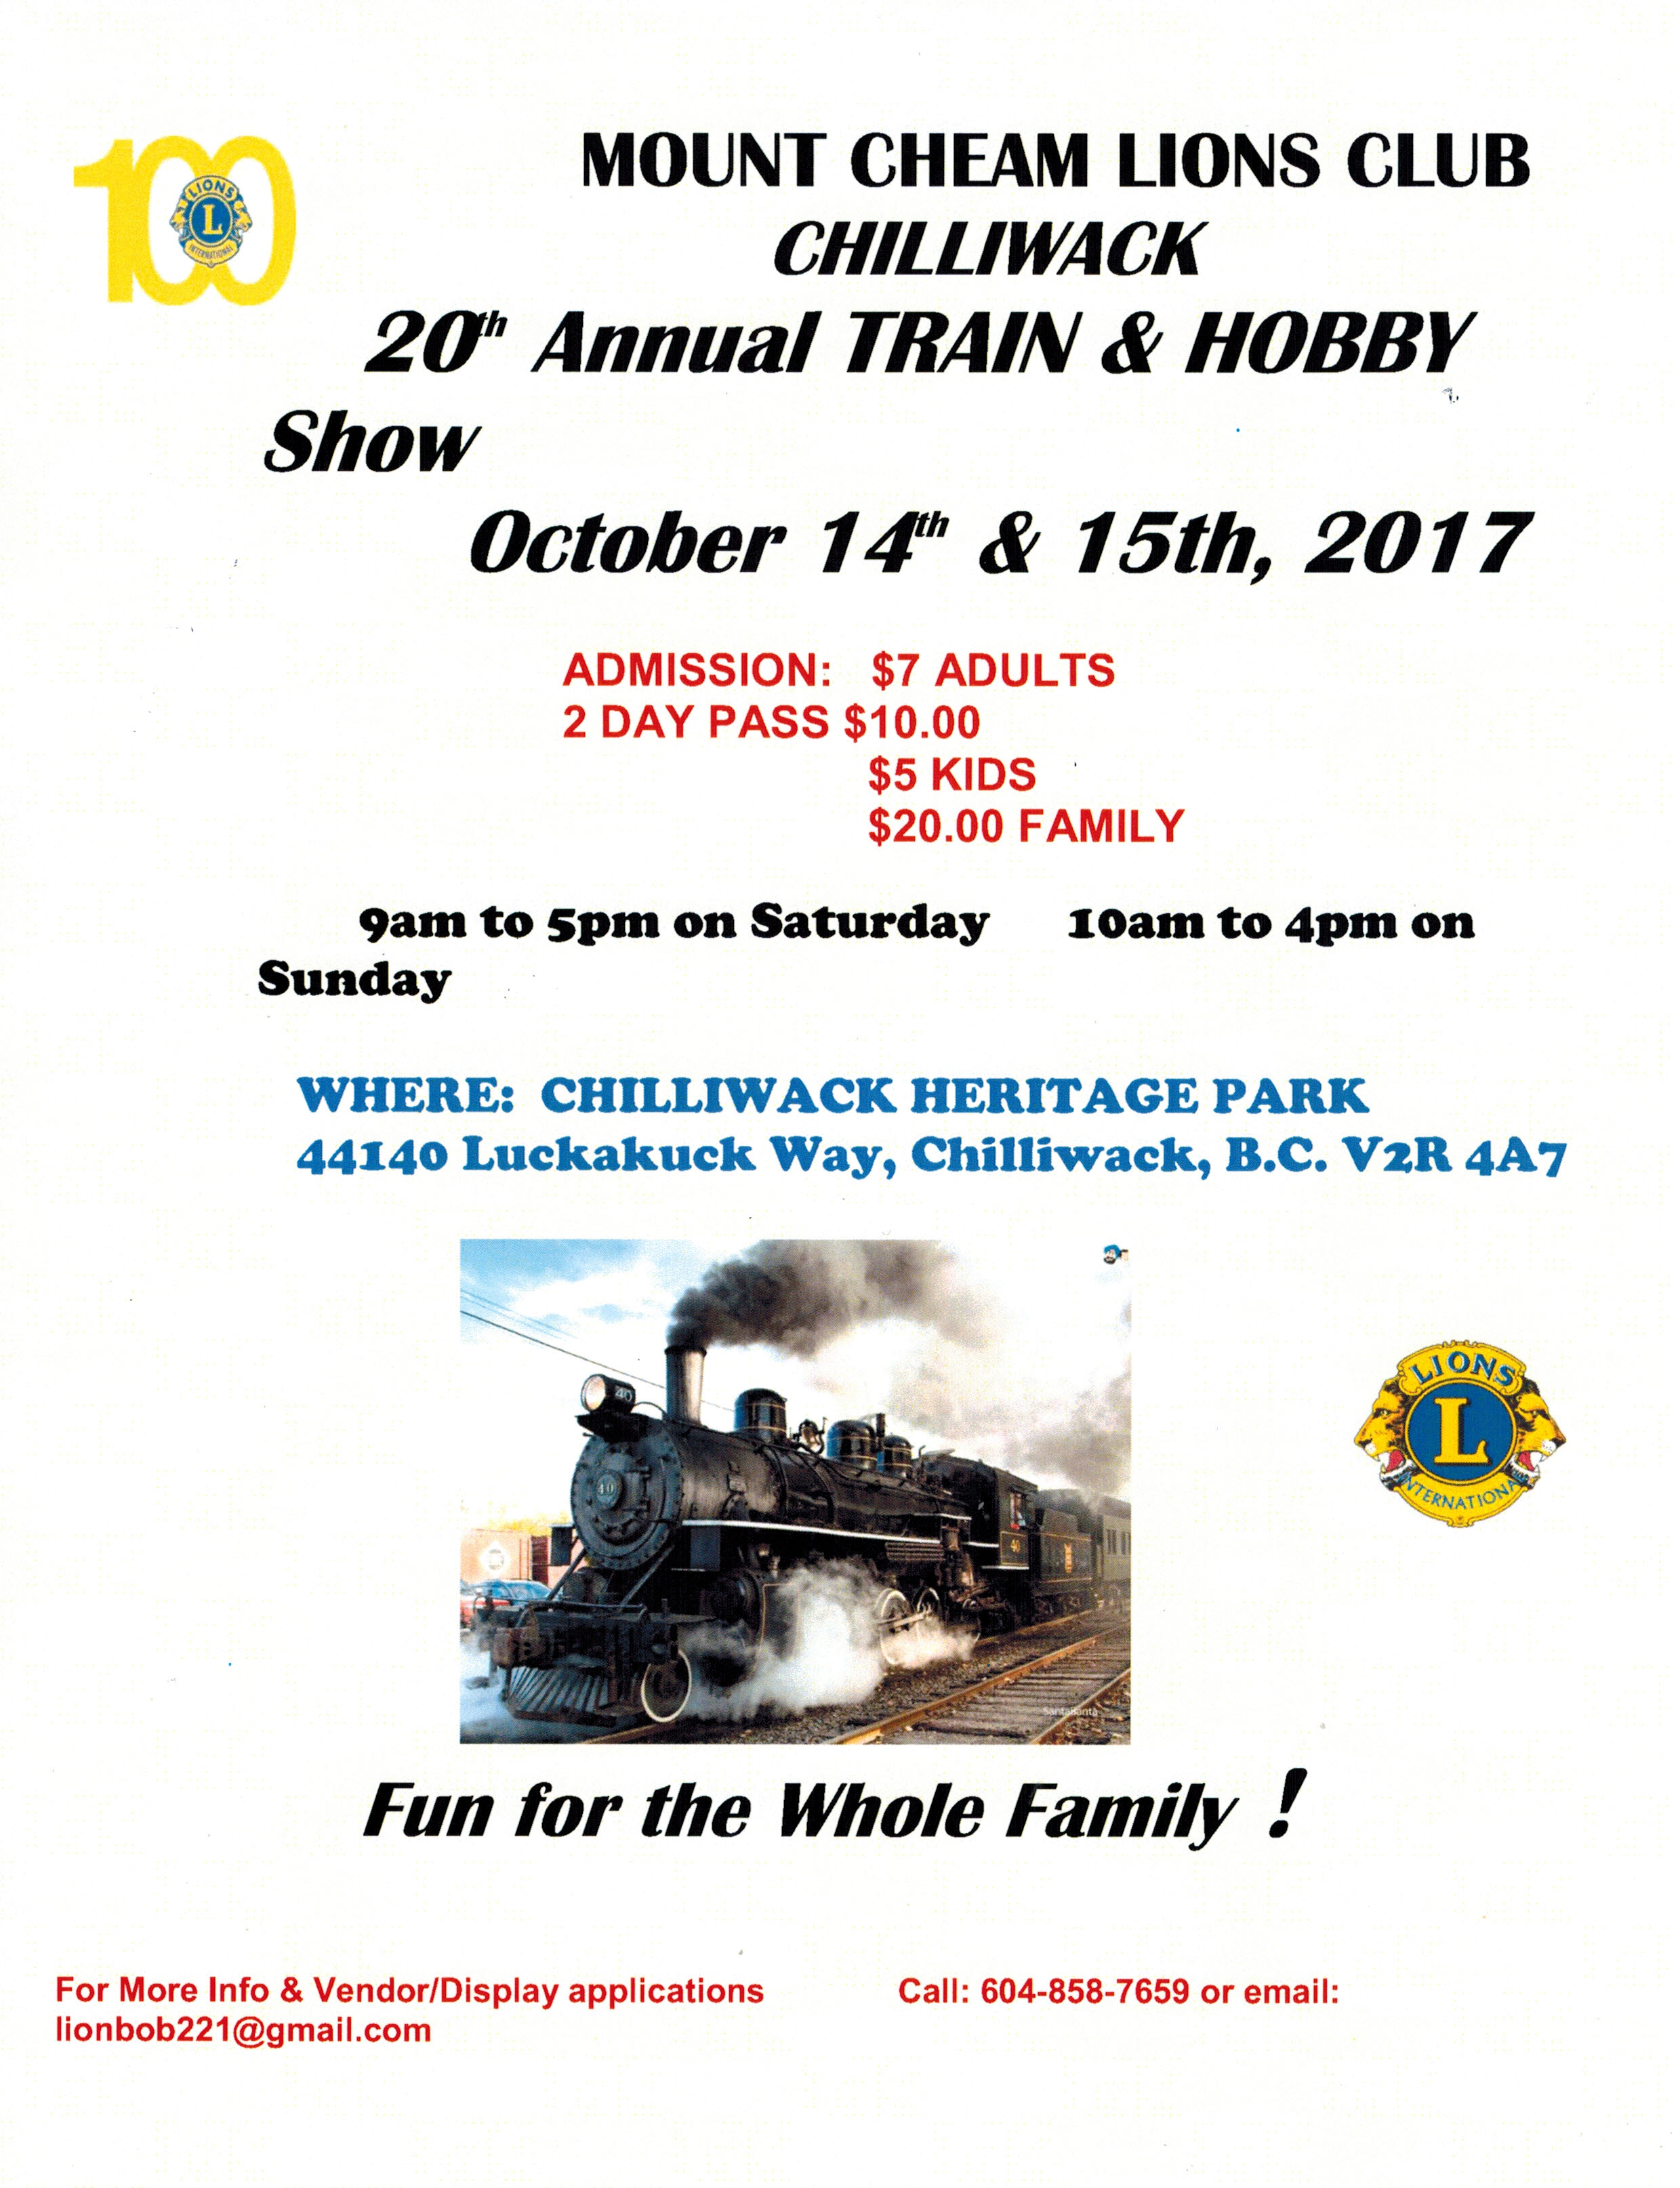 GNRHS at Mt. Cheam Lions Club Train and Hobby Show in Chilliwack, BC